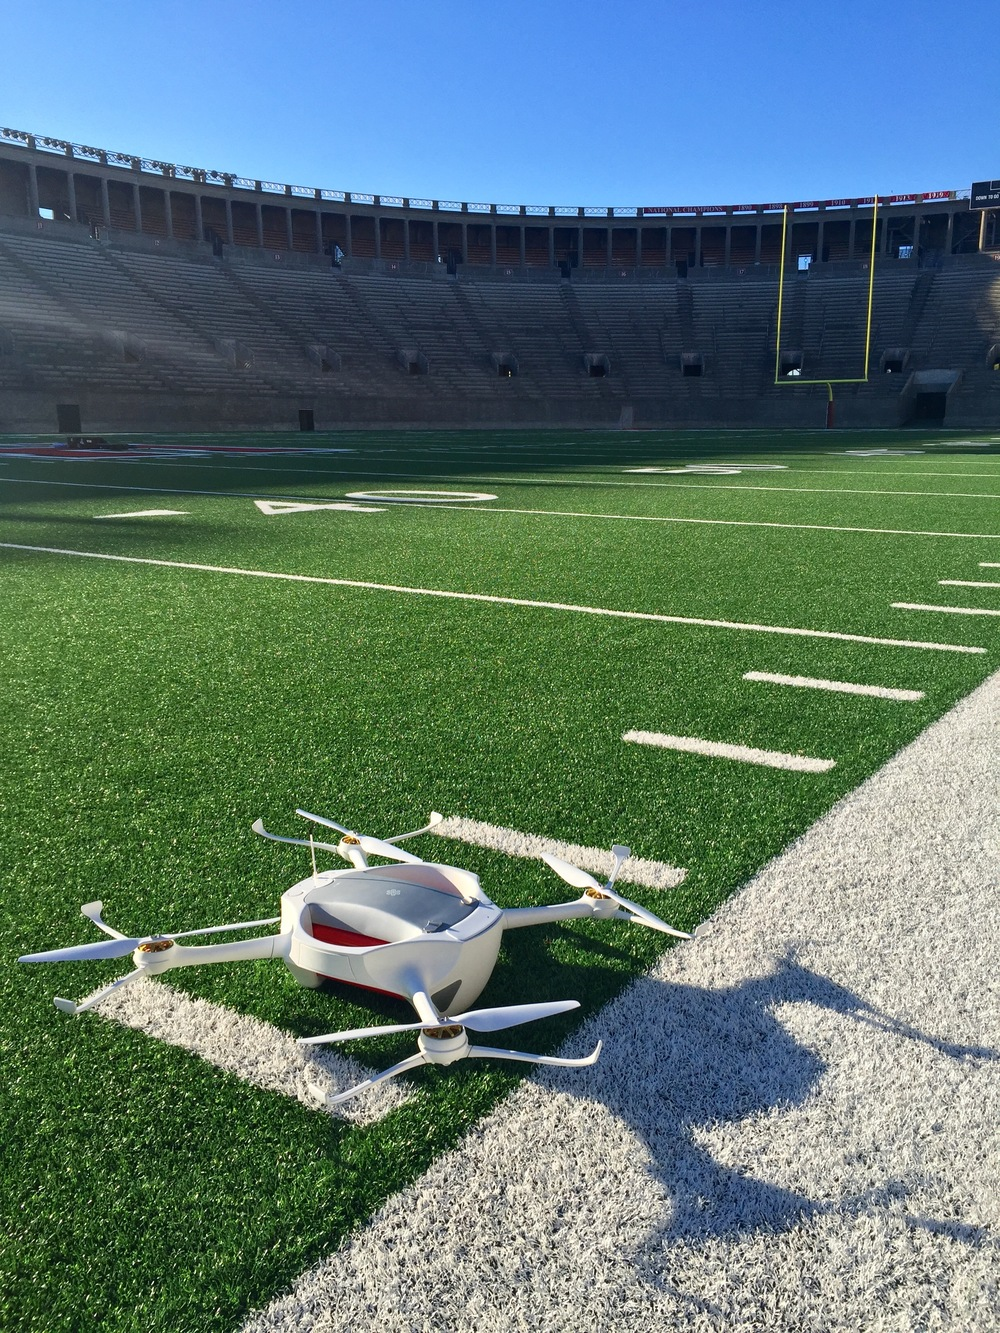 The Matternet One UAV just after safety test-flights in Harvard Stadium